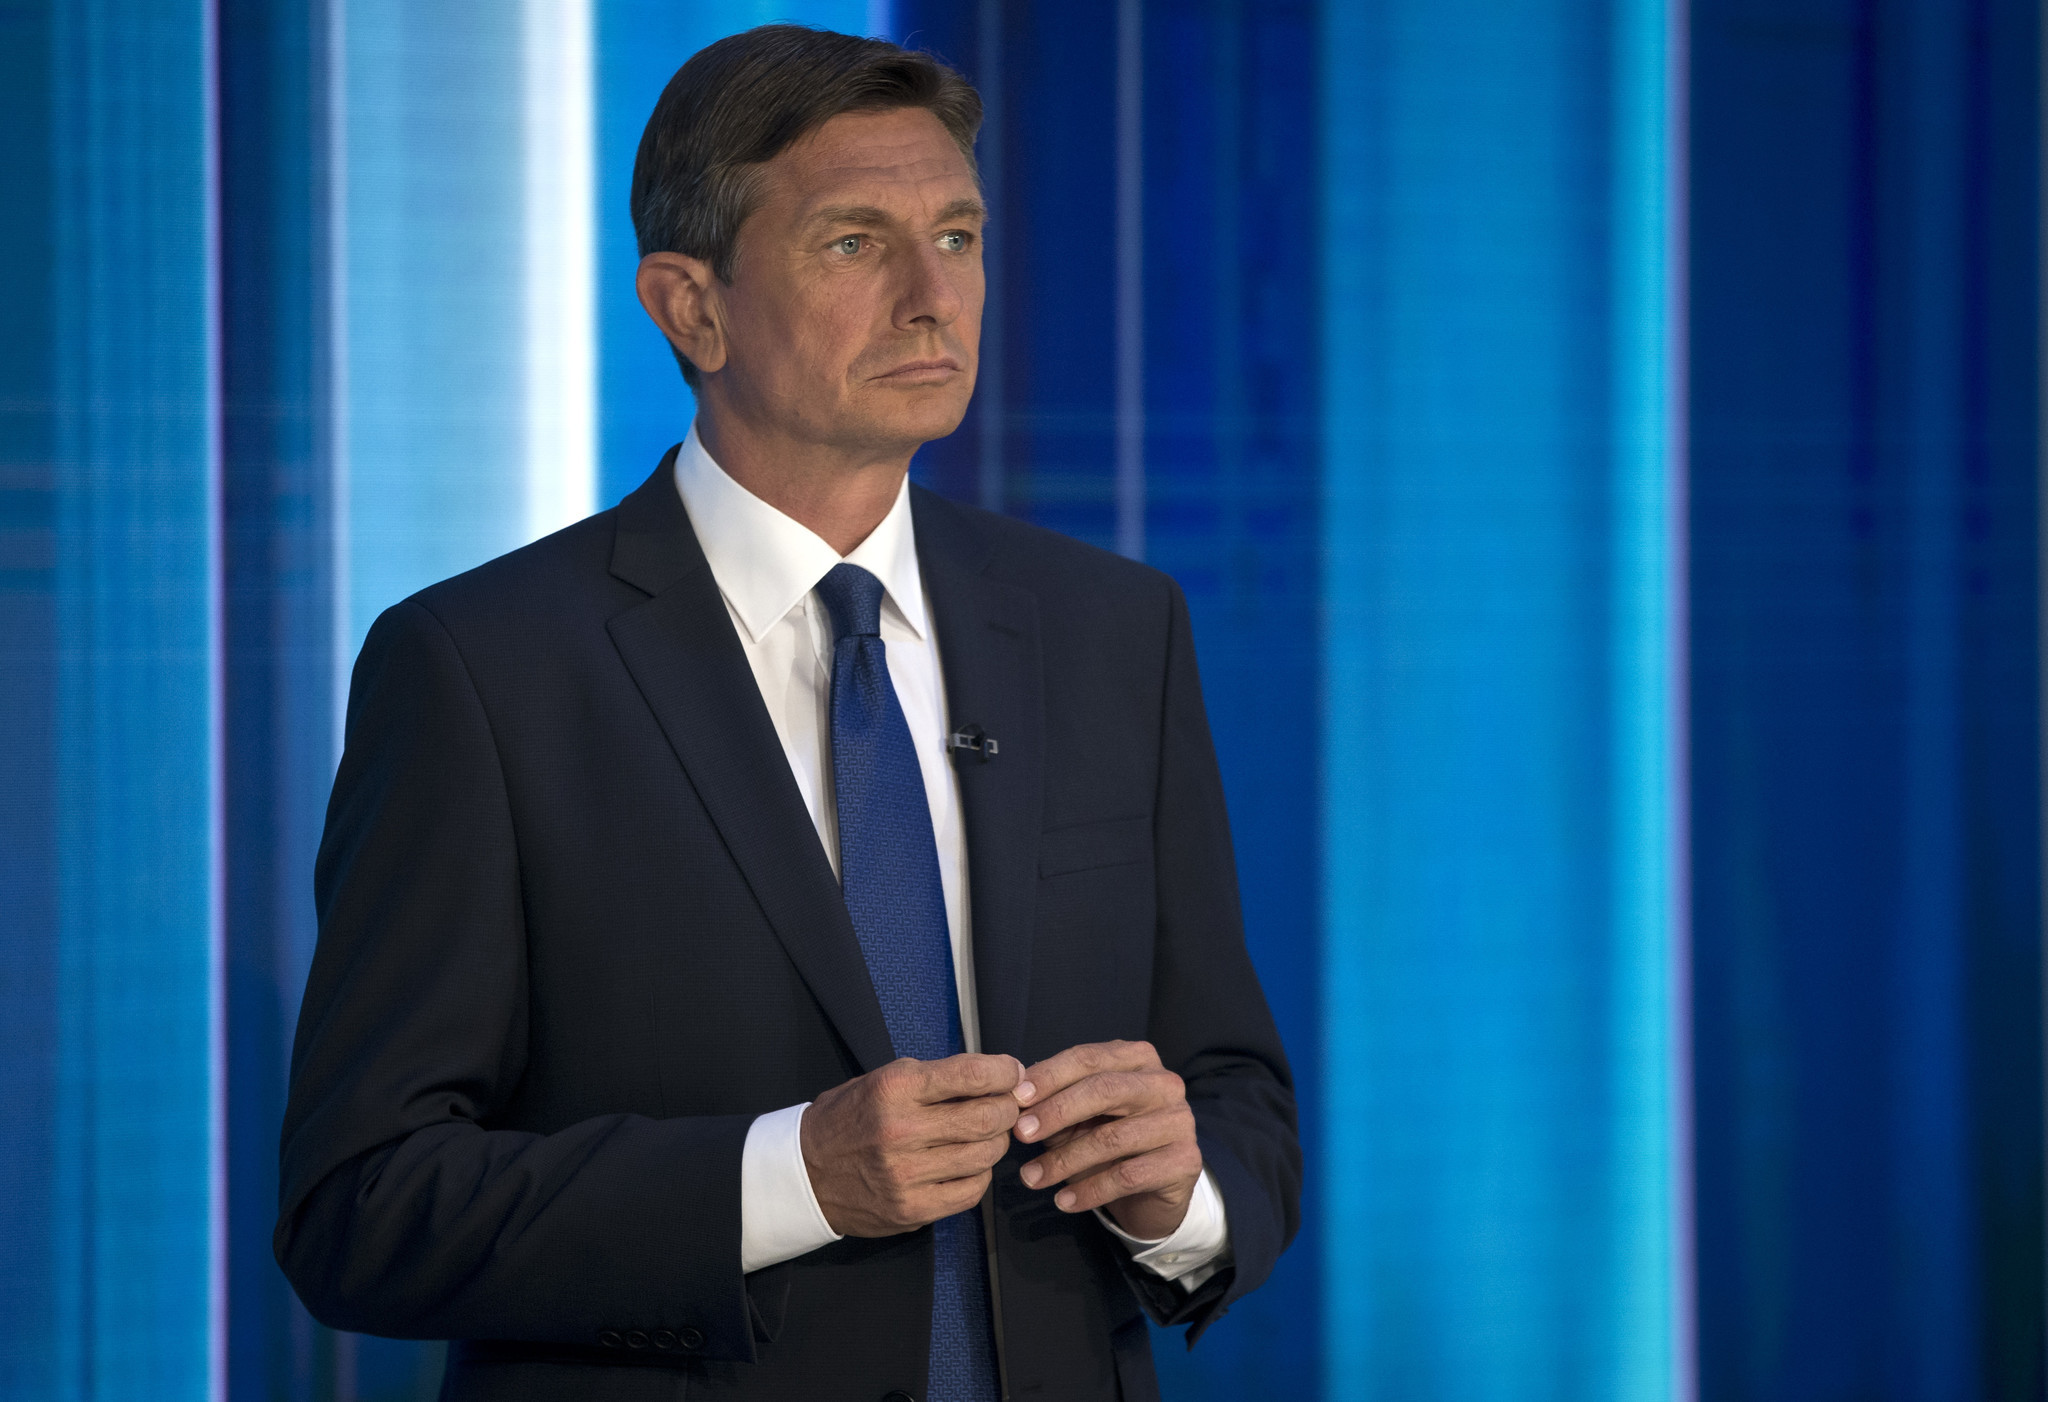 More time for talks over formation of coalition govt or snap polls for Slovenia?